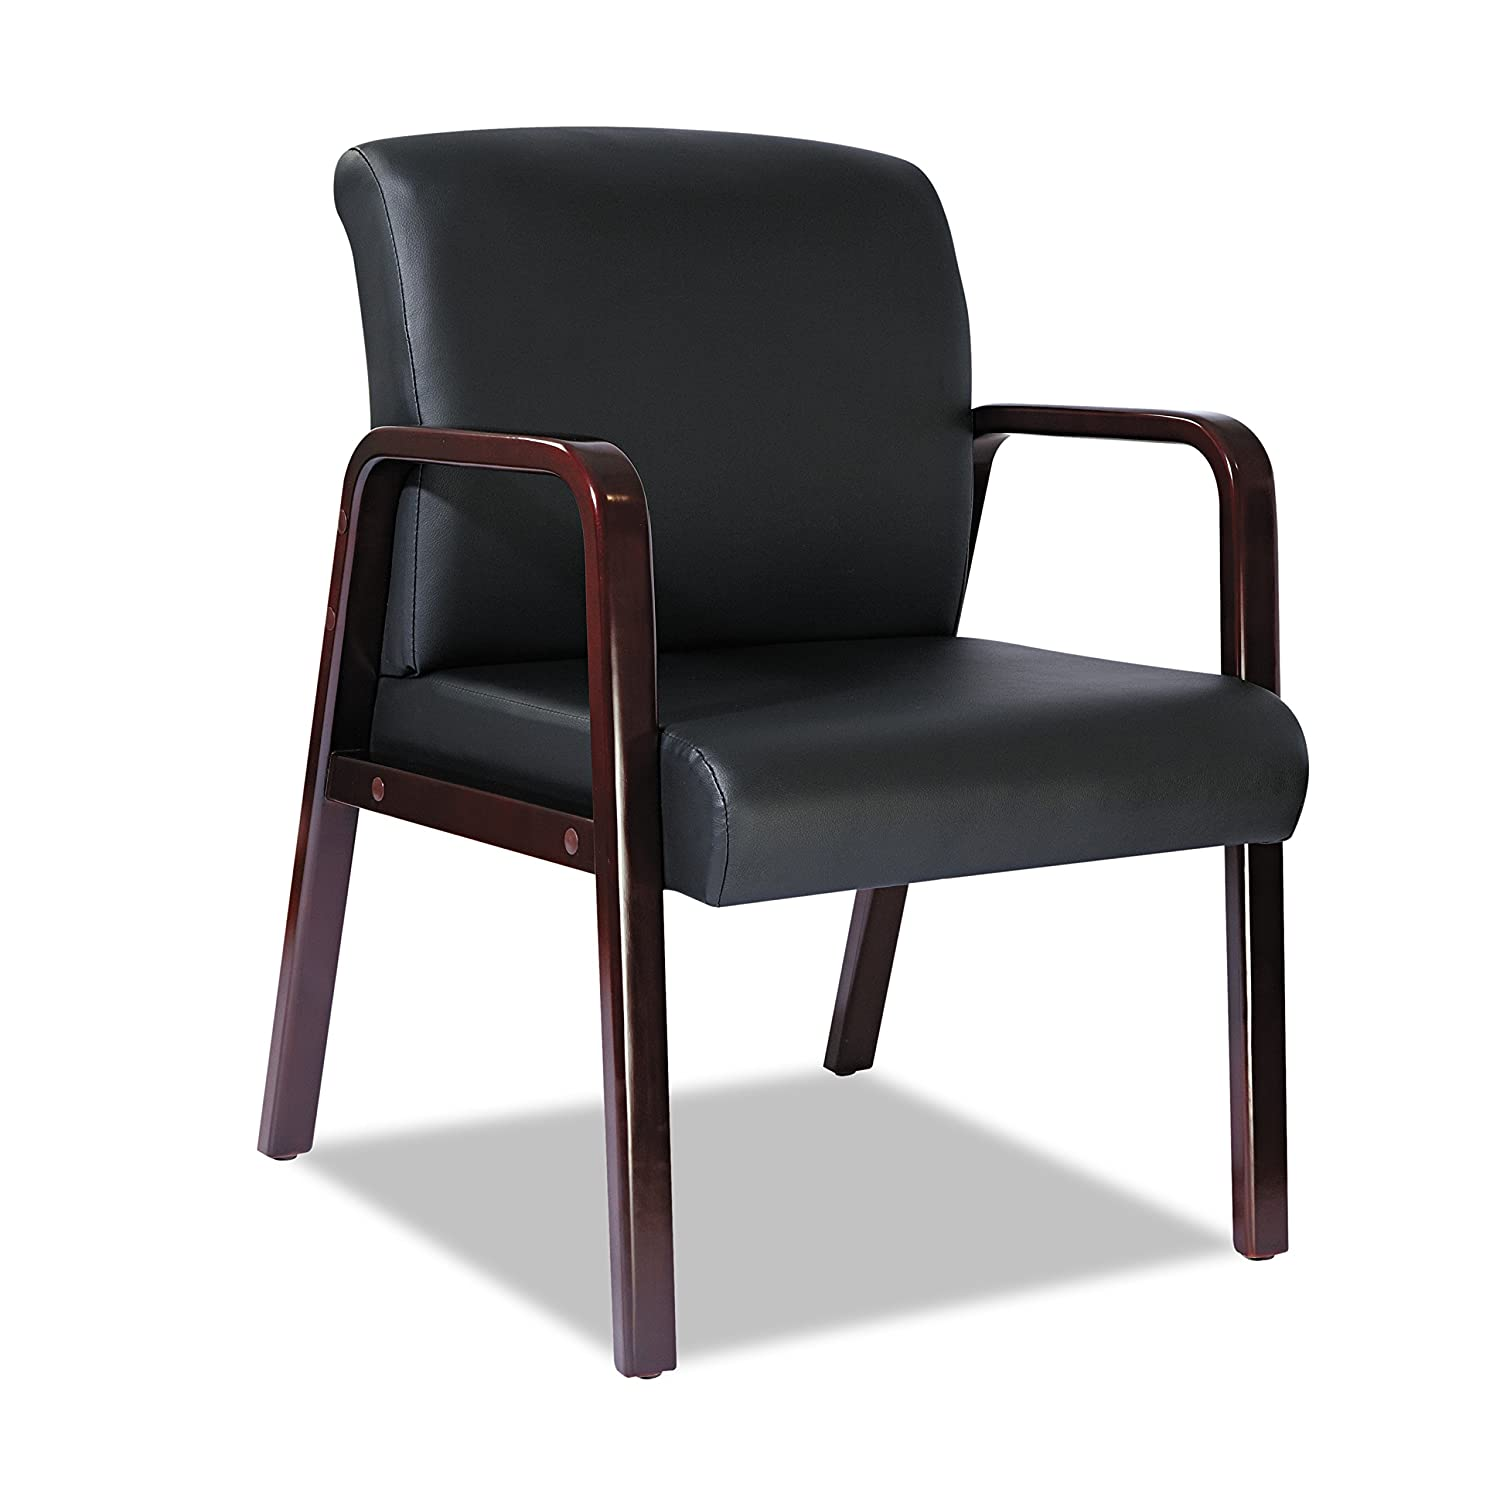 Alera Reception Lounge Series Ready-To-Assemble Guest Chair, Mahogany/Black Leather United Stationers - DROPSHIP ALERL4319M